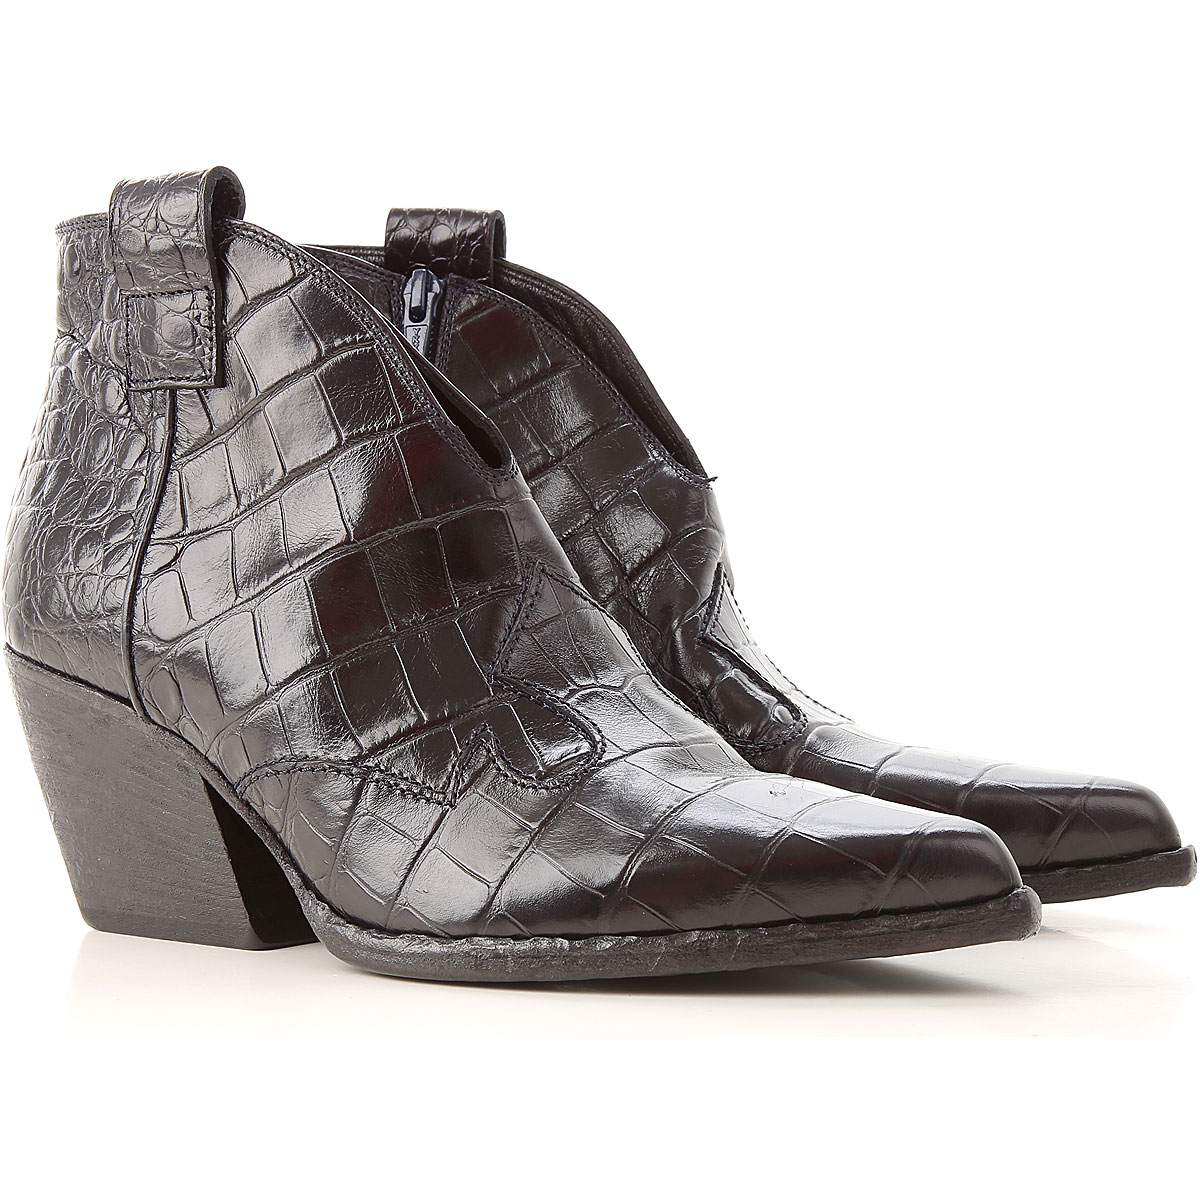 Elena Iachi Boots For Women, Booties On Sale, Black, Leather, 2019, 3.5 4.5 6 6.5 7 7.5